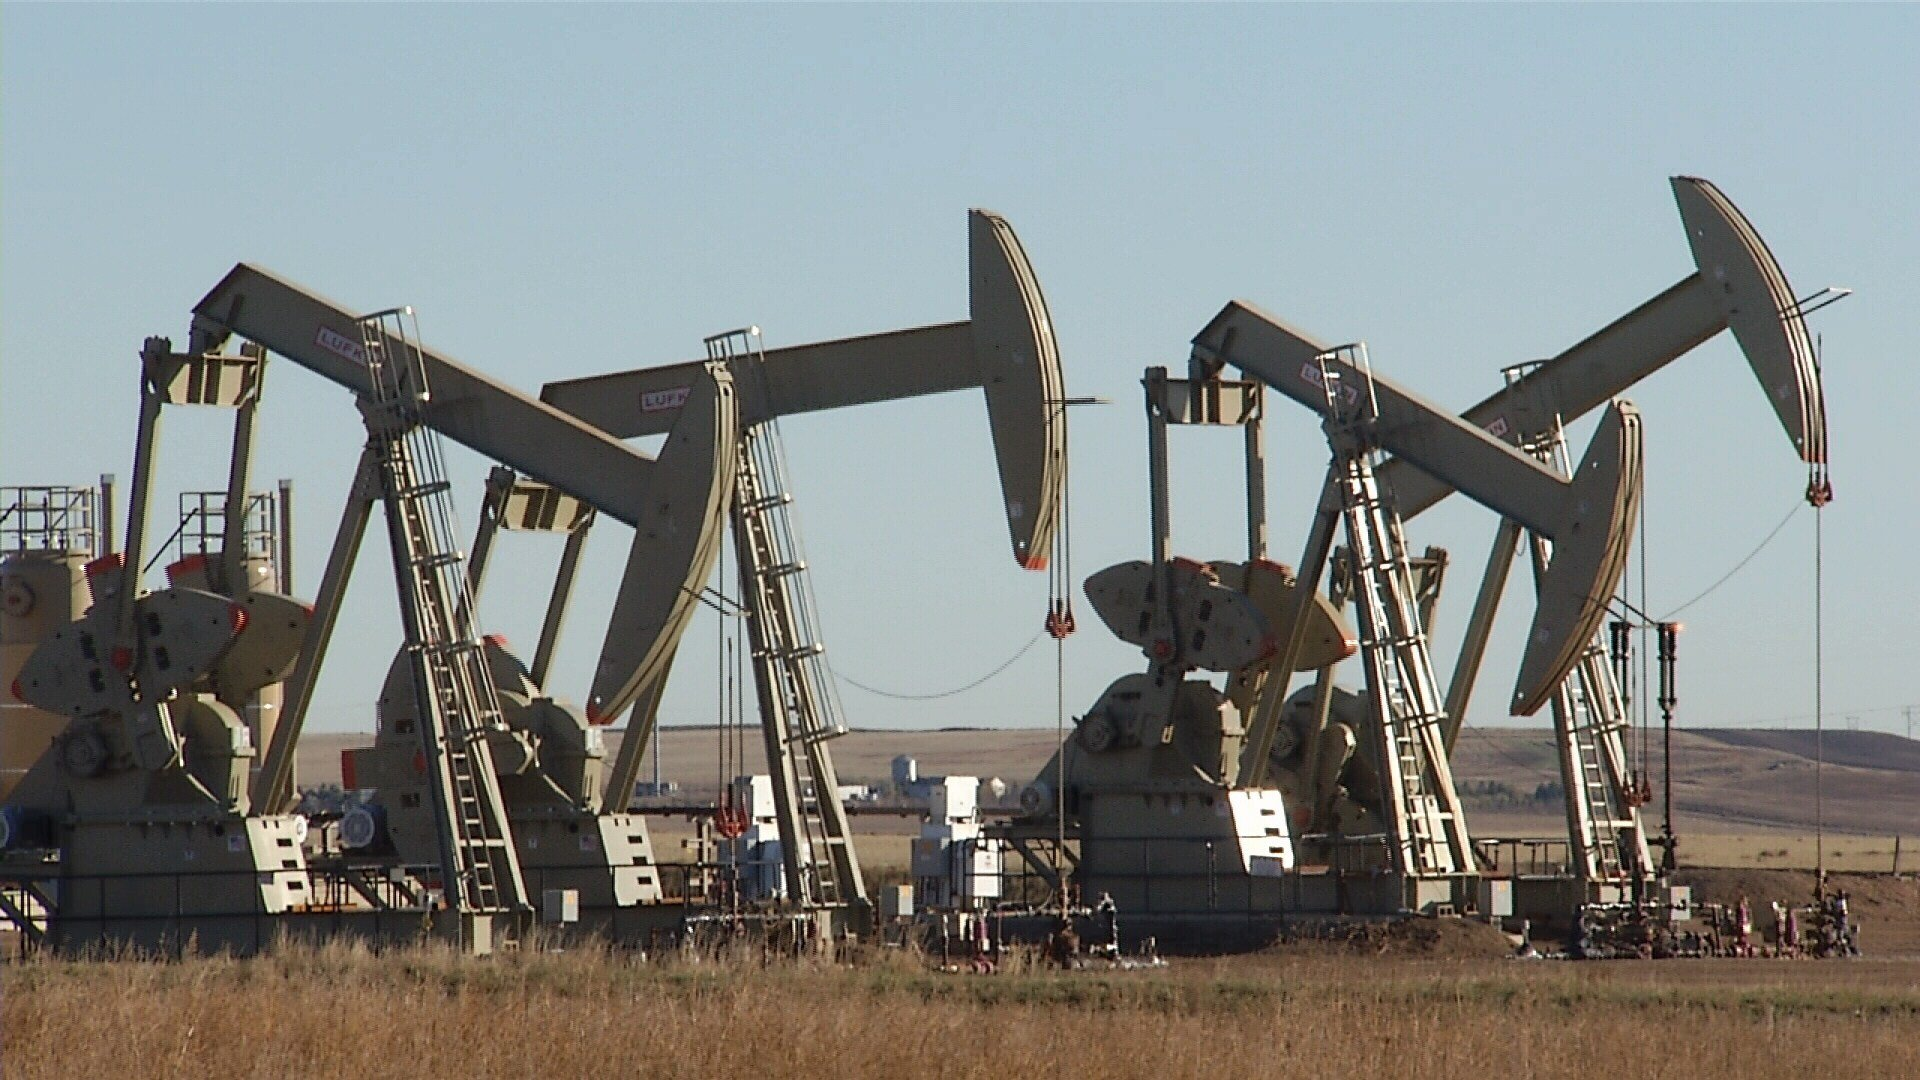 Oman reports oil output decline in first ten months